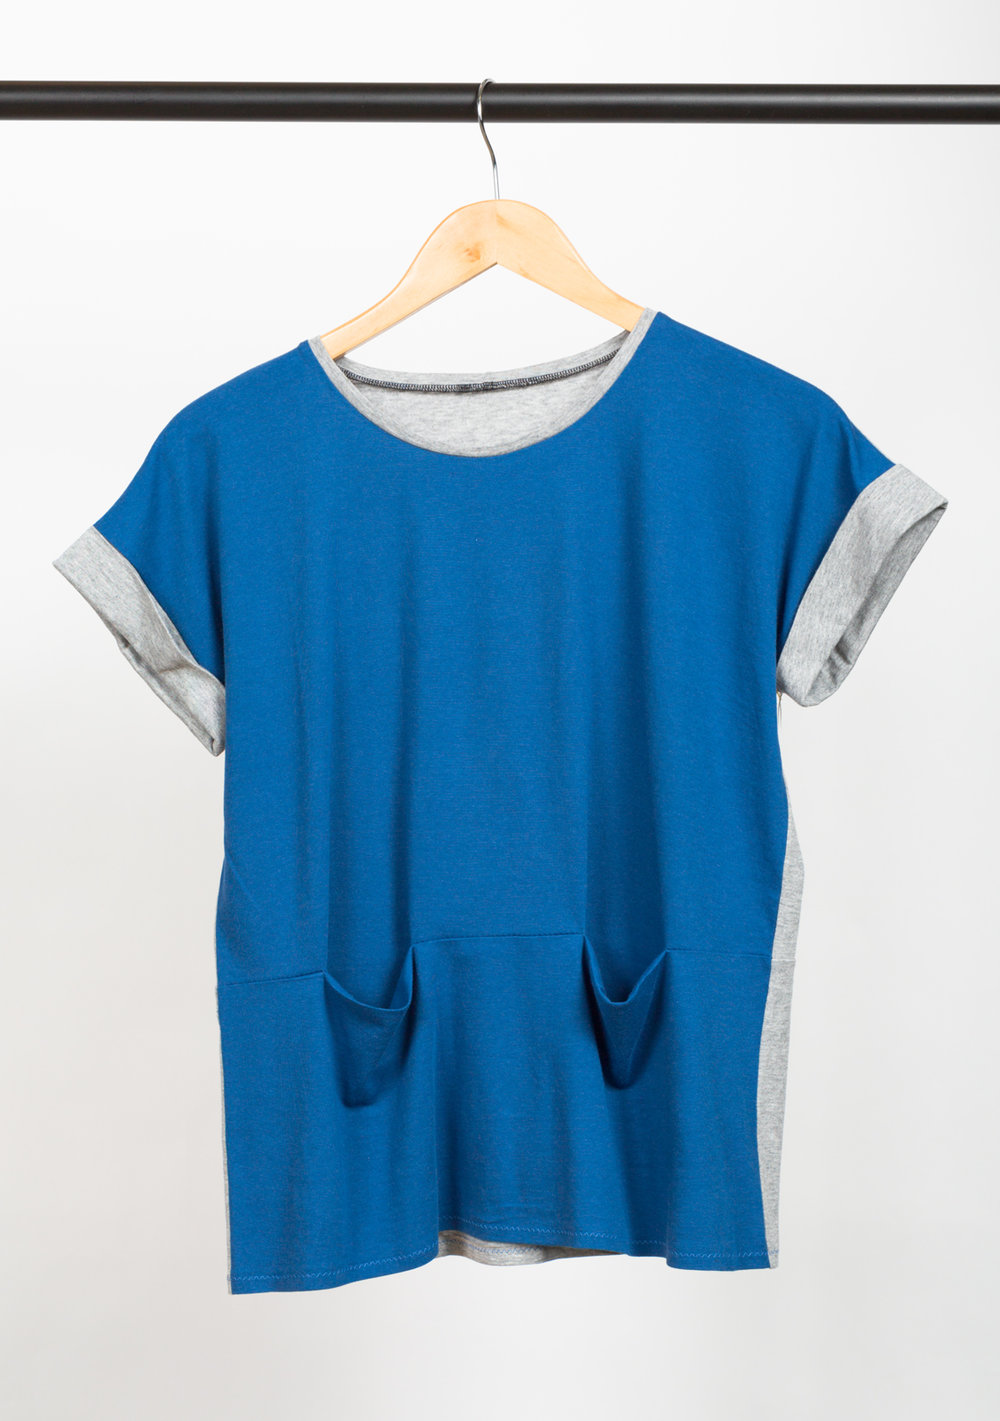 BENTO TEE, DESIGNED BY LIESL & CO,  MADE BY CHRISTINE HAYNES, FEATURING DANA COTTON/MODAL KNIT